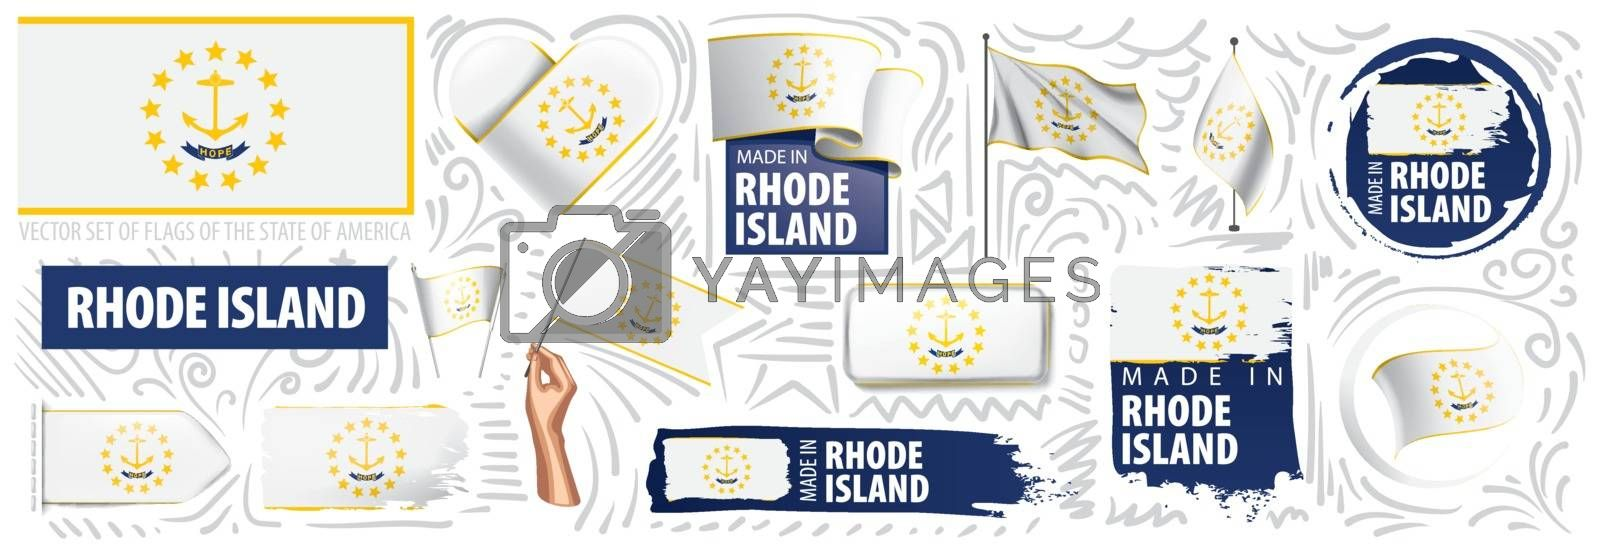 Vector set of flags of the American state of Rhode island in different designs.